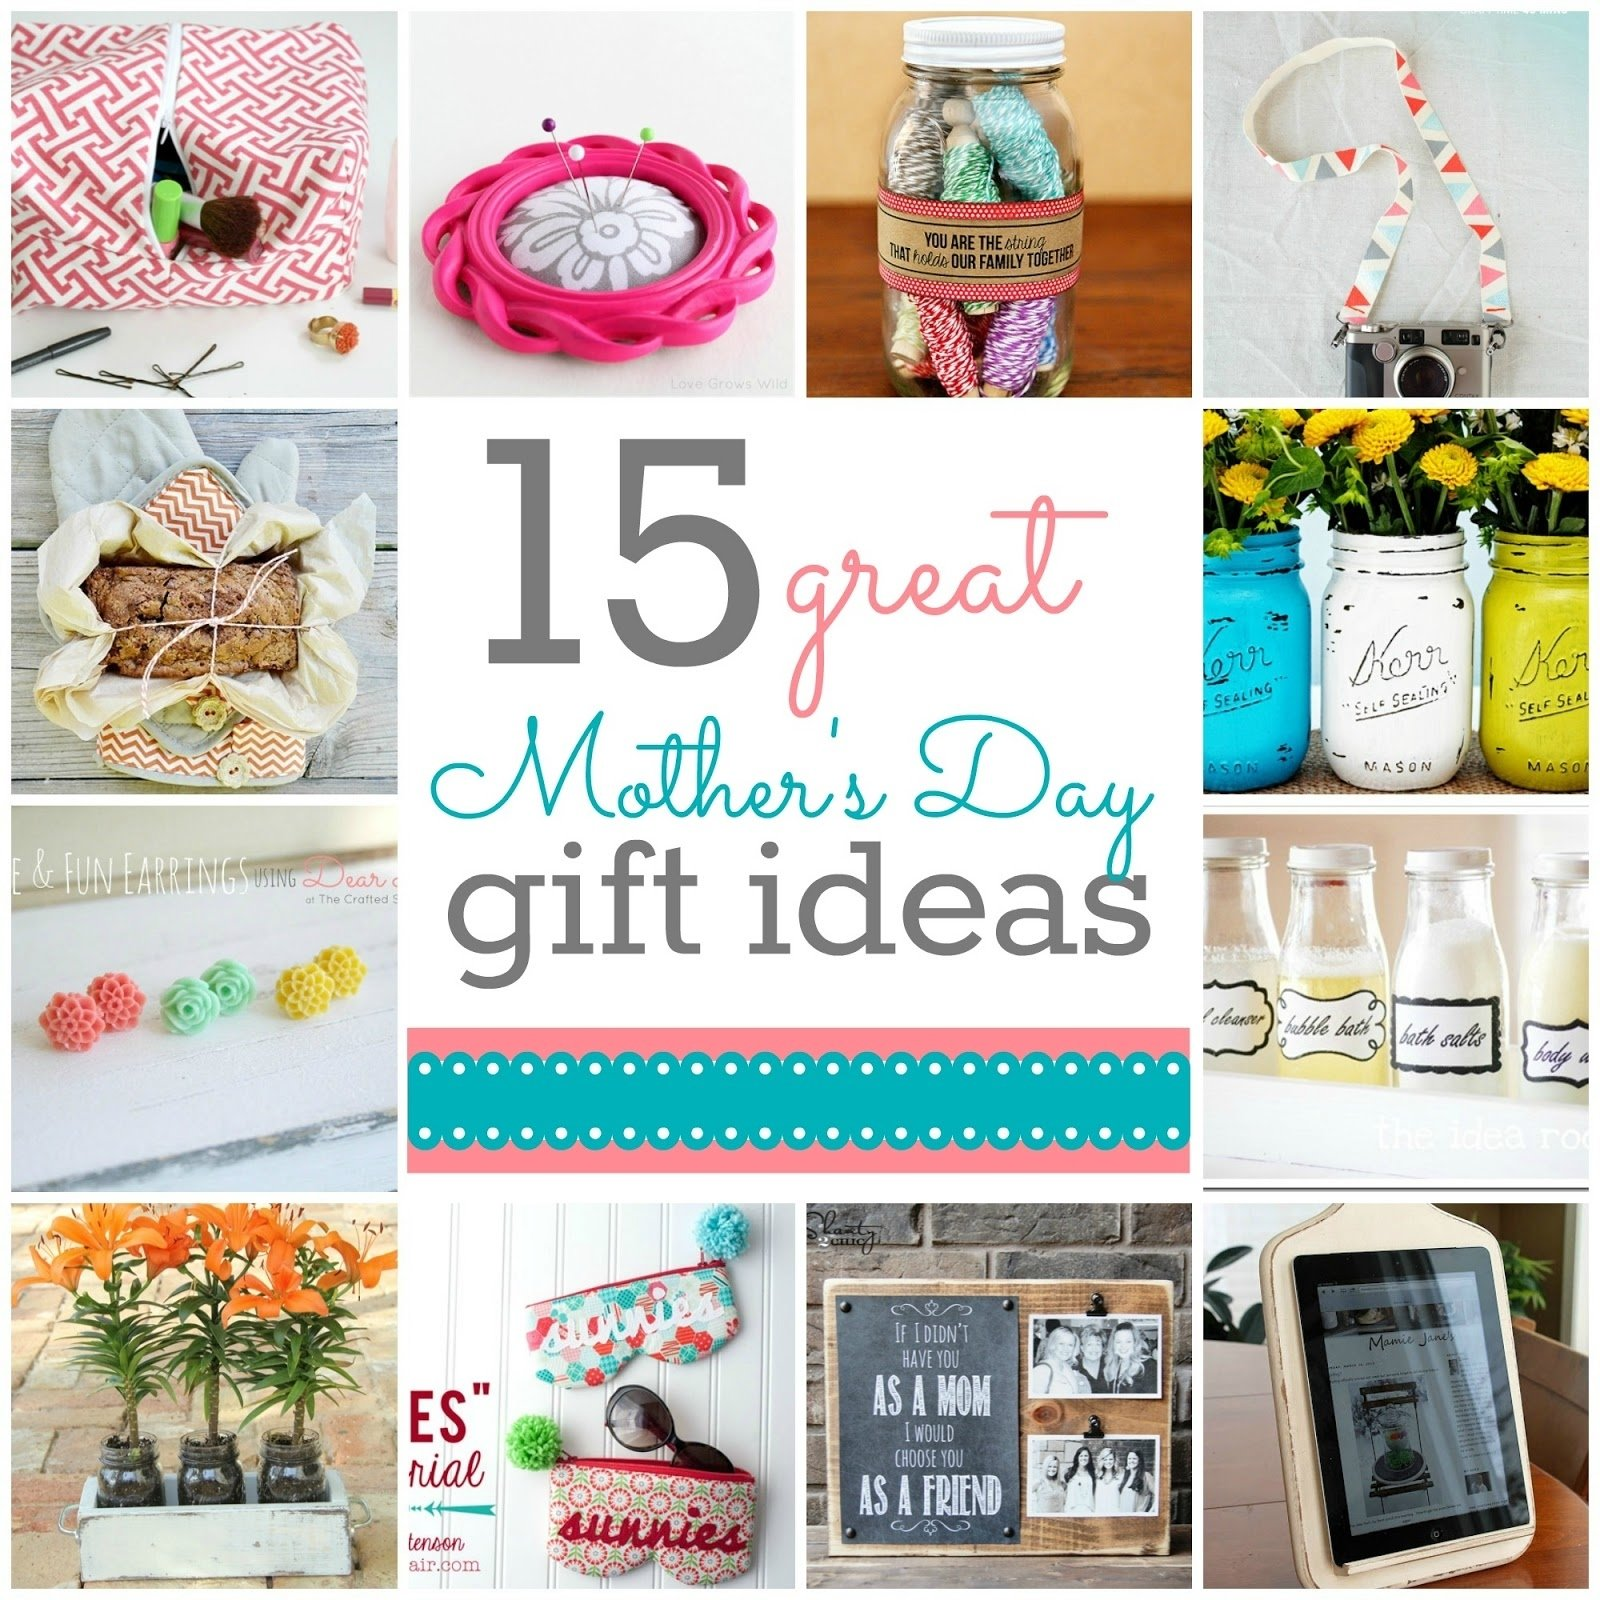 10 Attractive Ideas For Gifts For Mom mothers day gift ideas an epic giveaway the crafted sparrow 1 2020